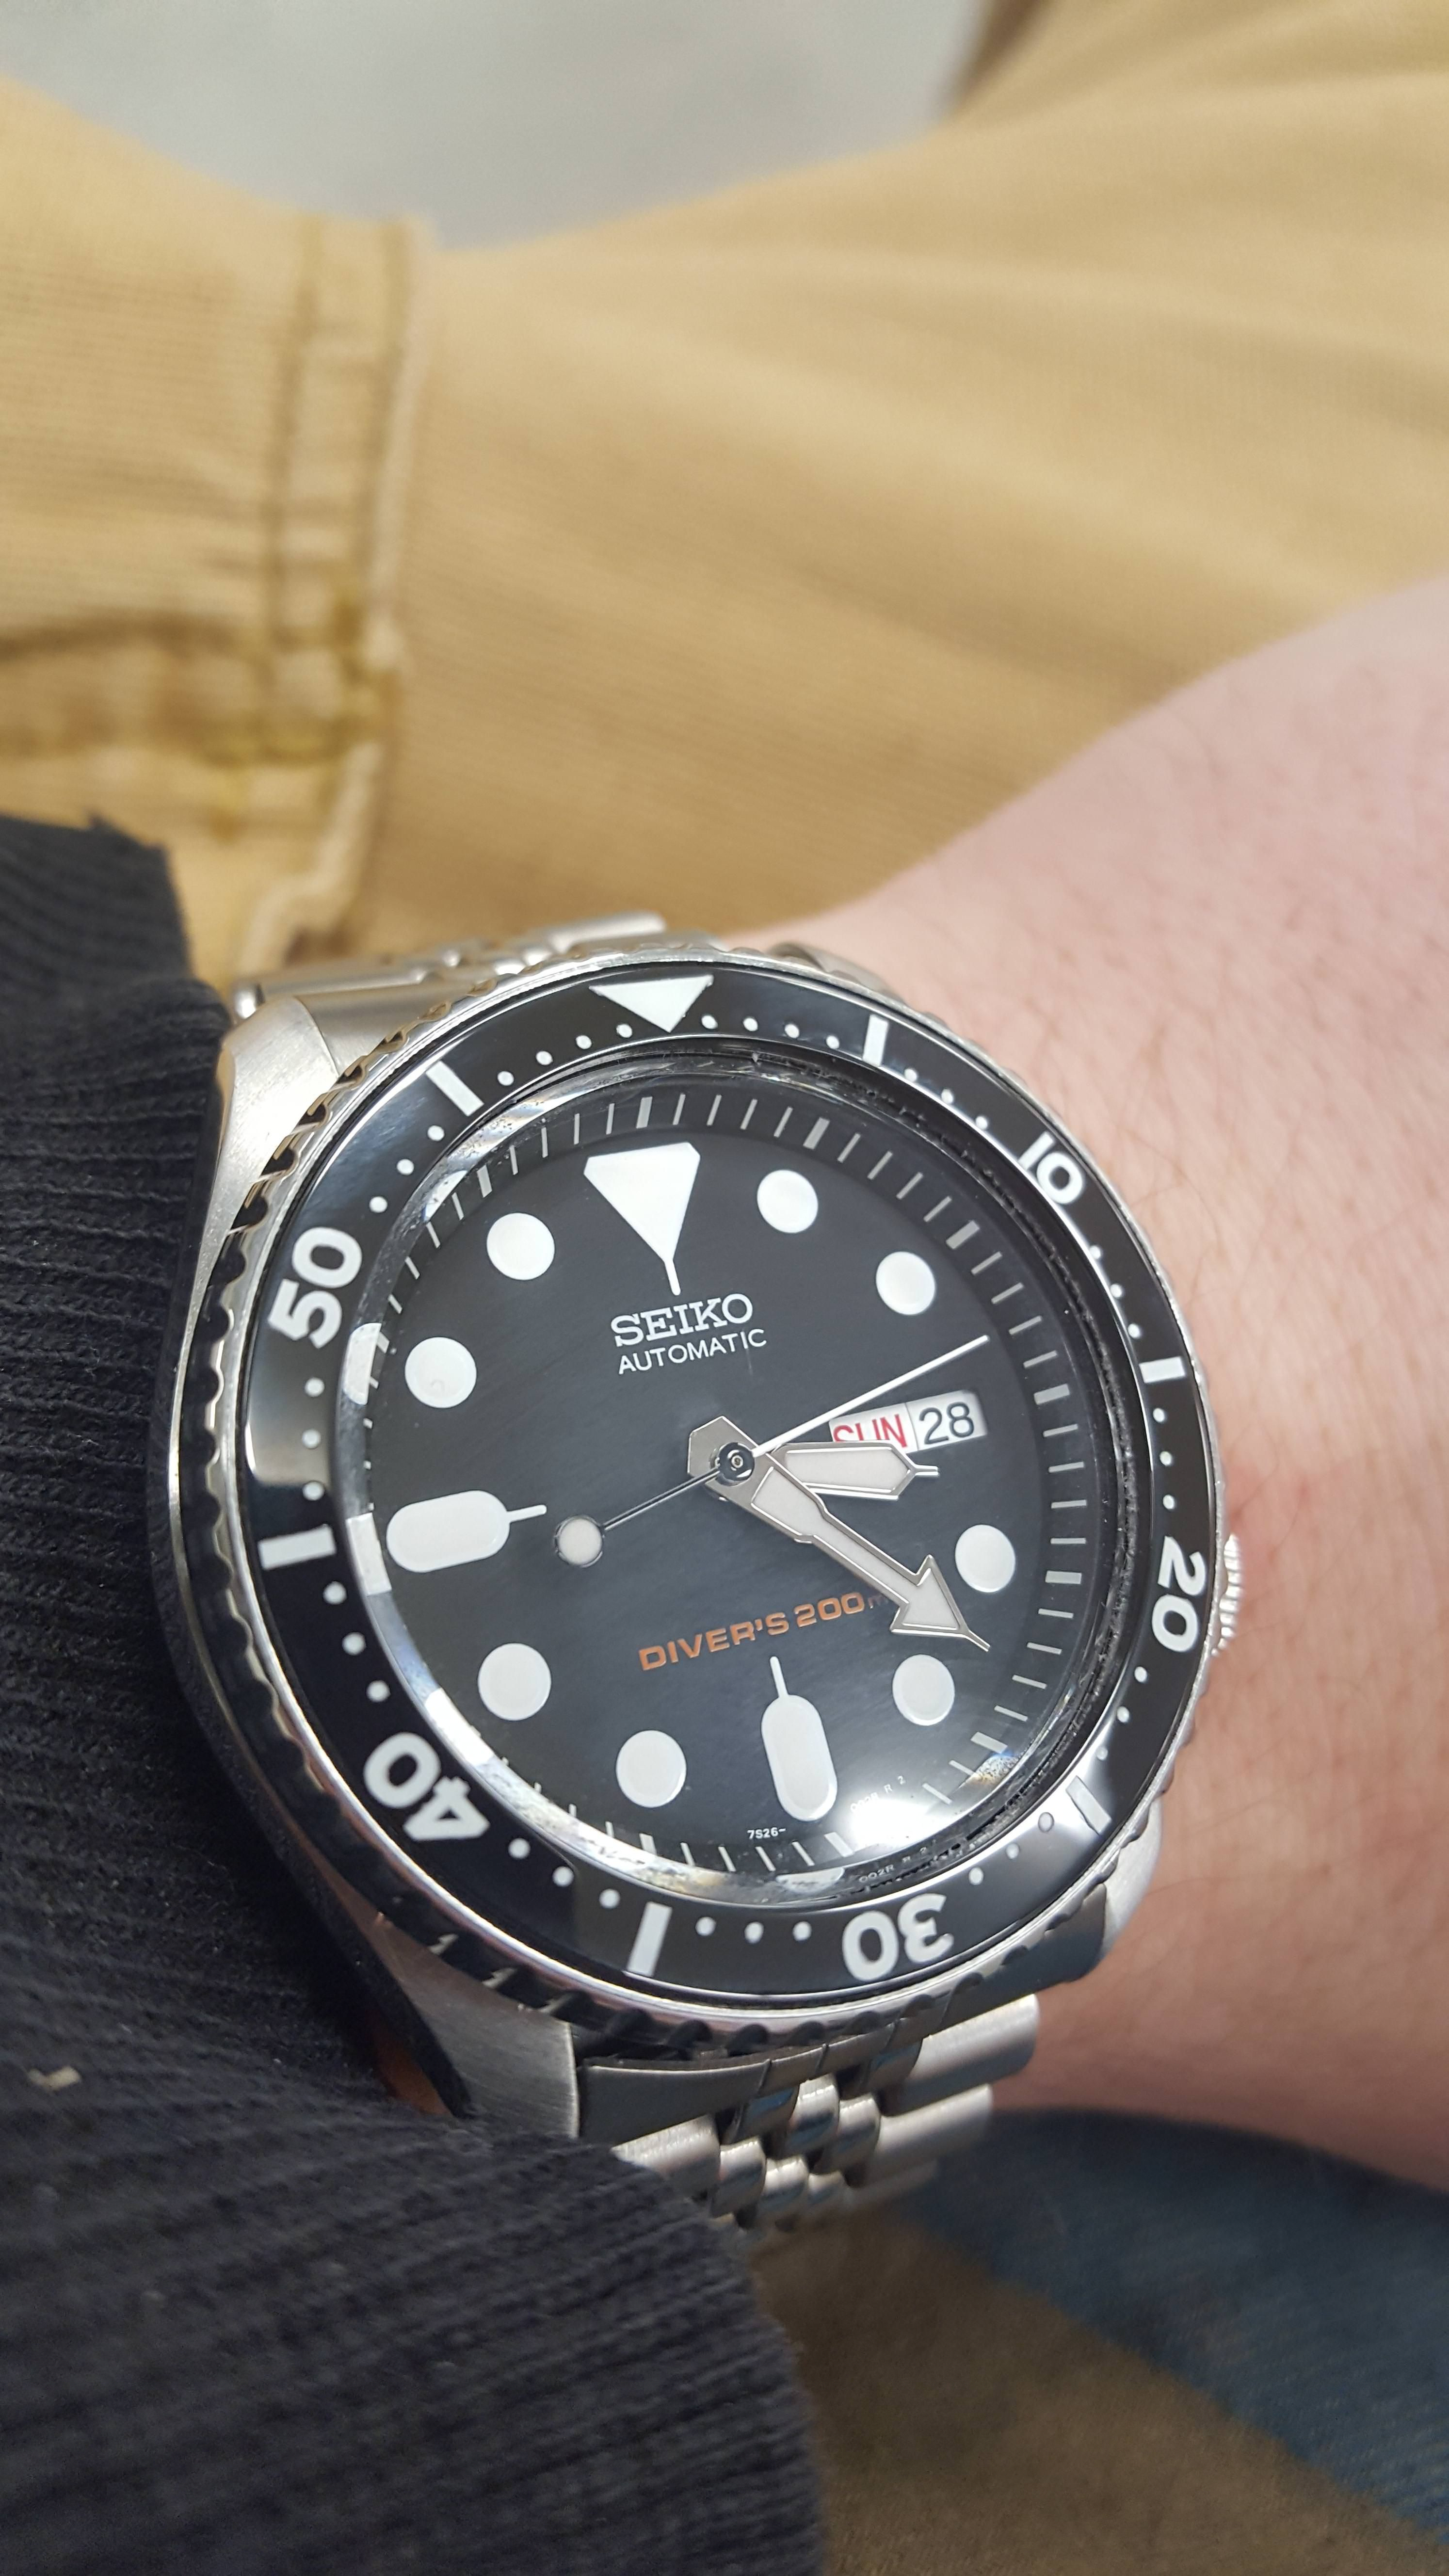 Pin by Robert Somogy on Watches | Watches, Seiko watches